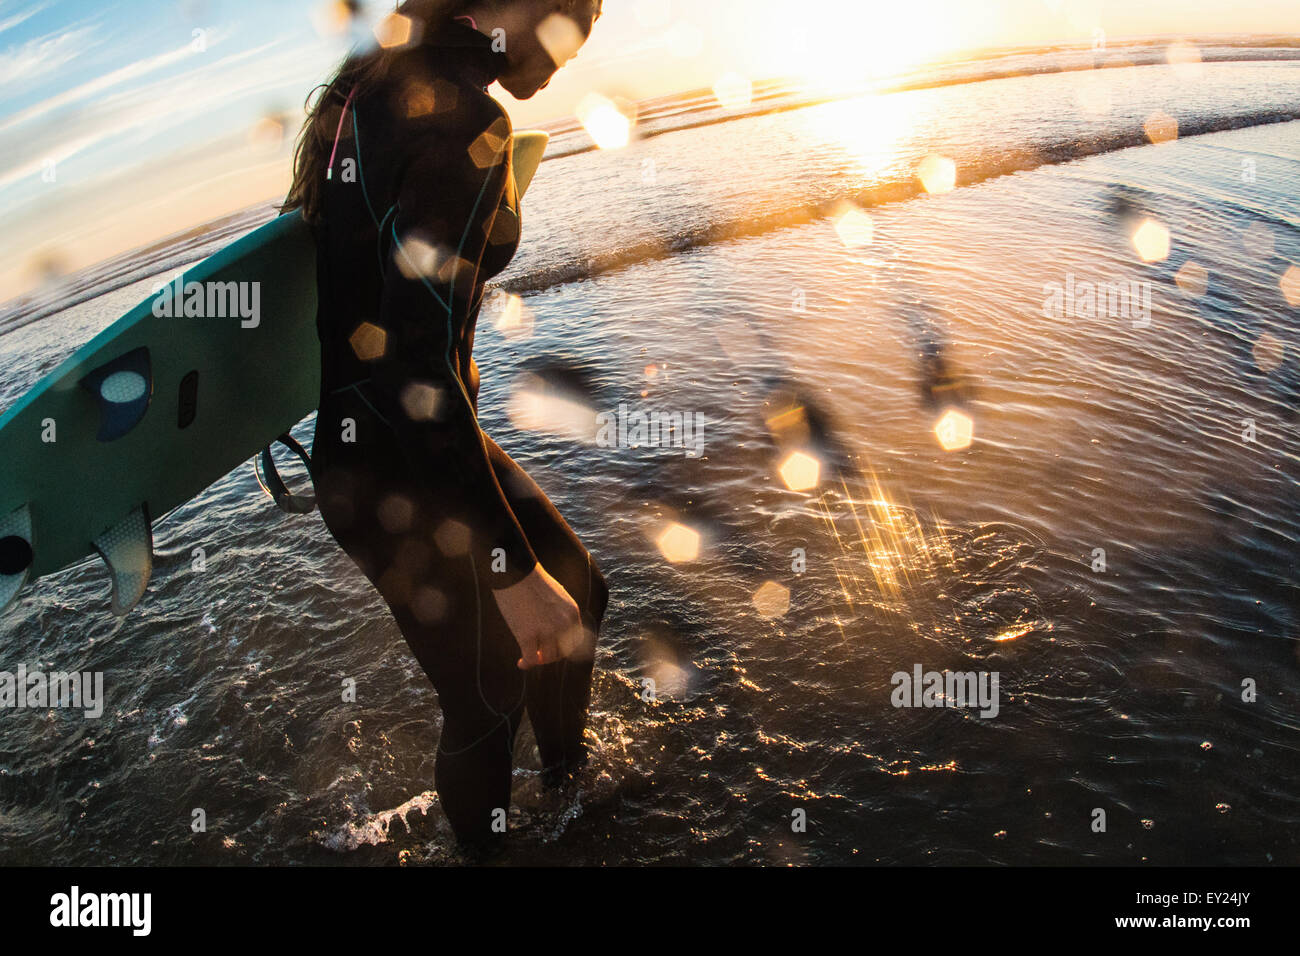 Surfista femmina paddling in mare al tramonto, Cardiff-By-The-Sea, CALIFORNIA, STATI UNITI D'AMERICA Immagini Stock